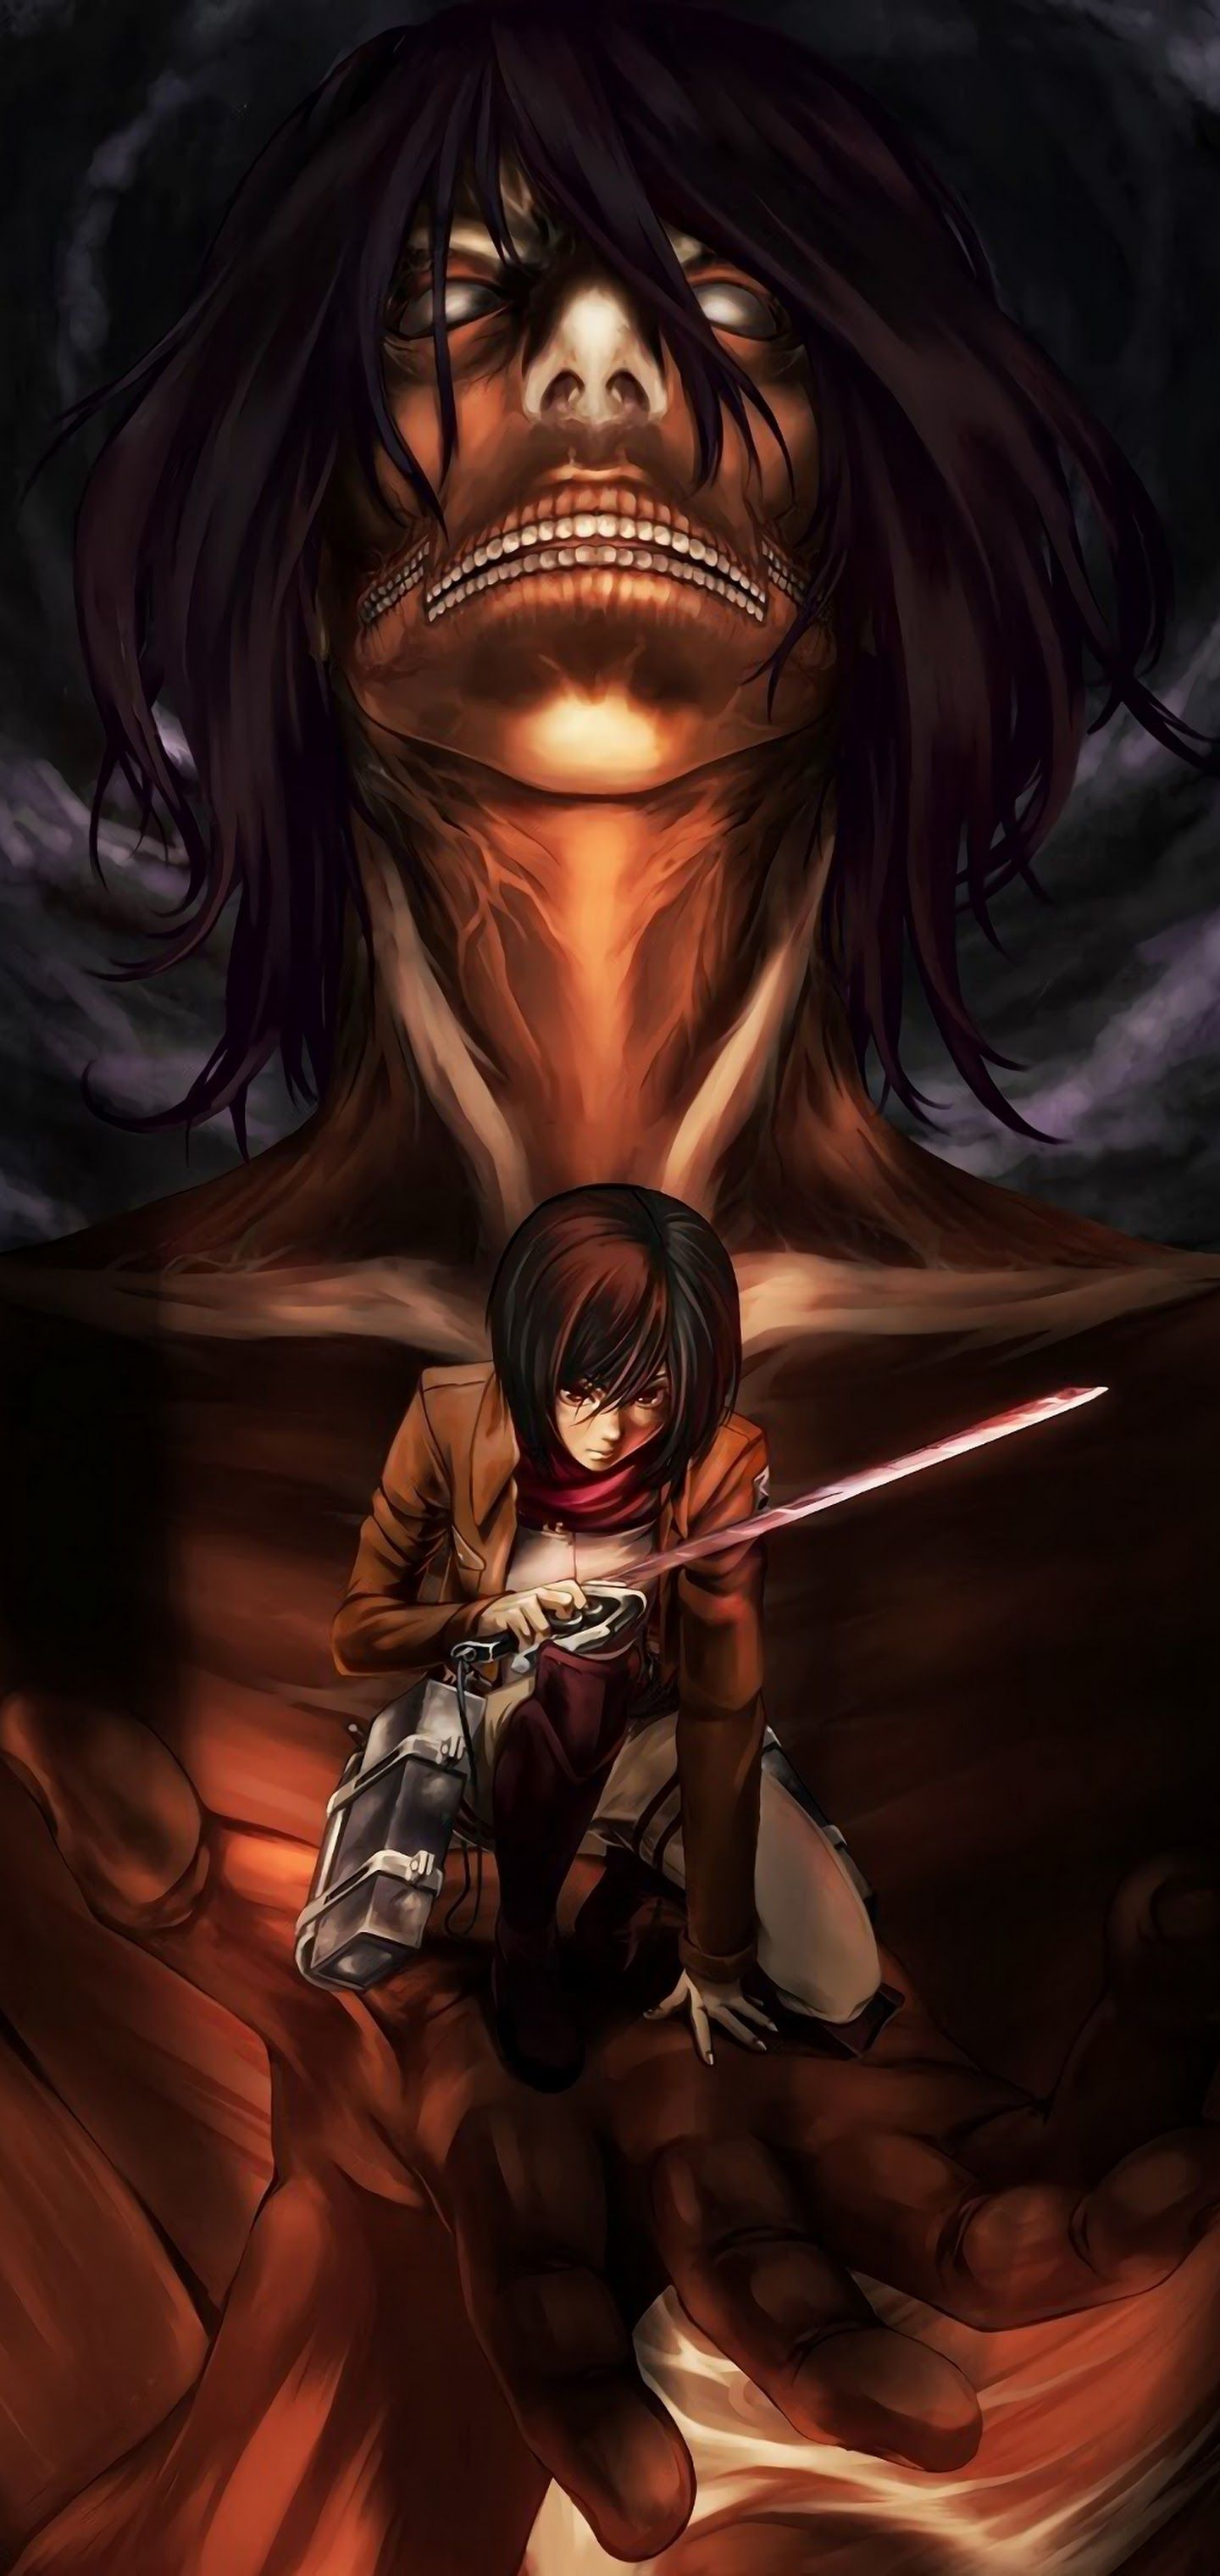 Download attack on titan 2 for windows & read reviews. Attack On Titan Smartphone Wallpapers - Wallpaper Cave